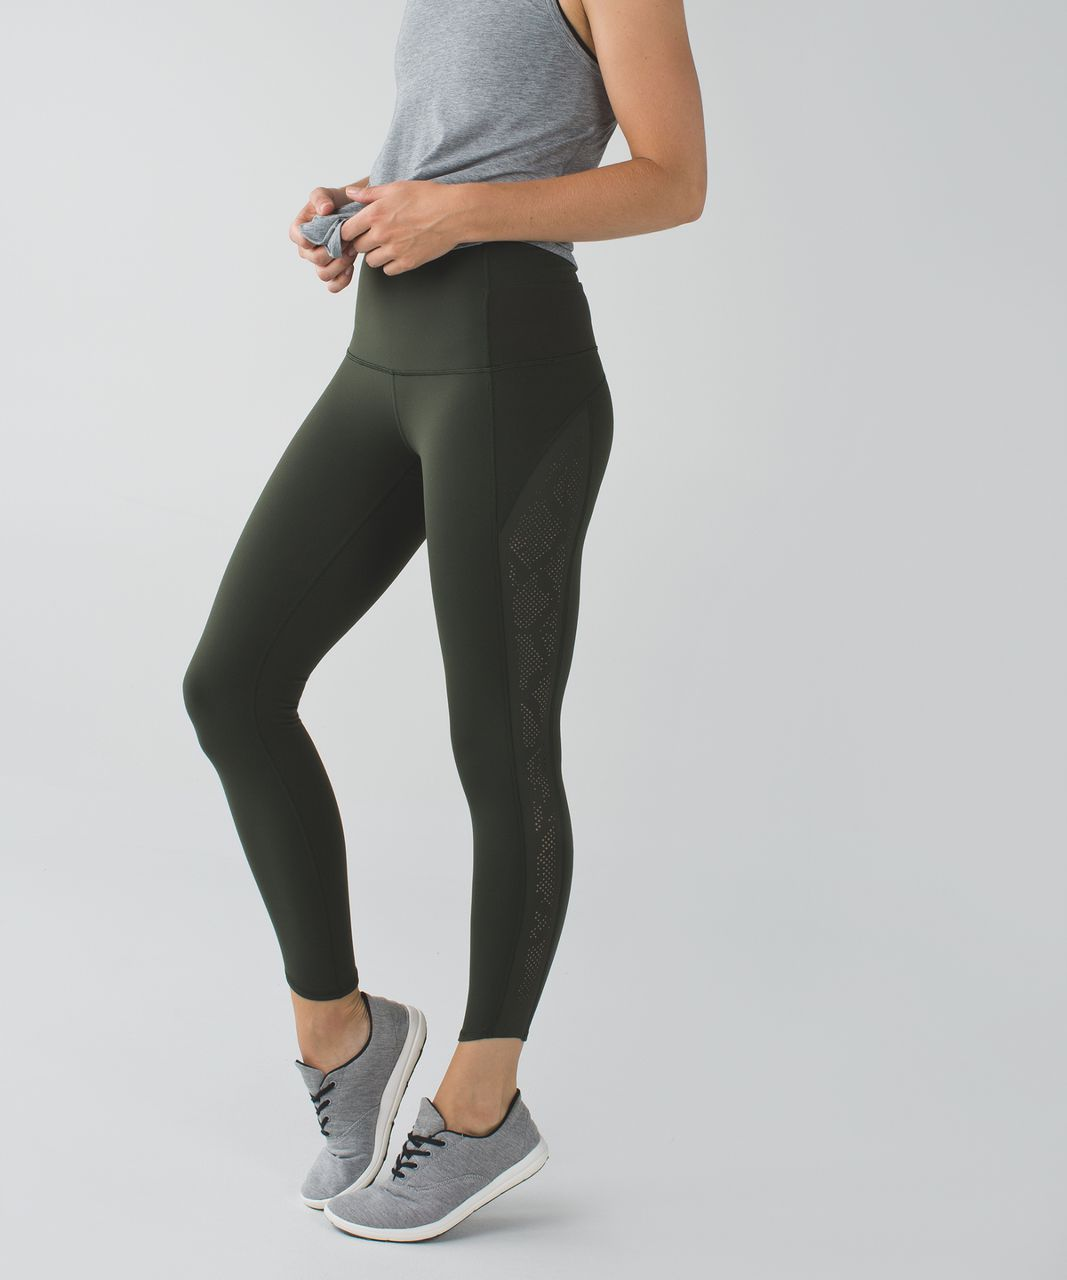 9321bd77a Lululemon Beyond Boundaries Pant - Gator Green   Fatigue Green - lulu  fanatics